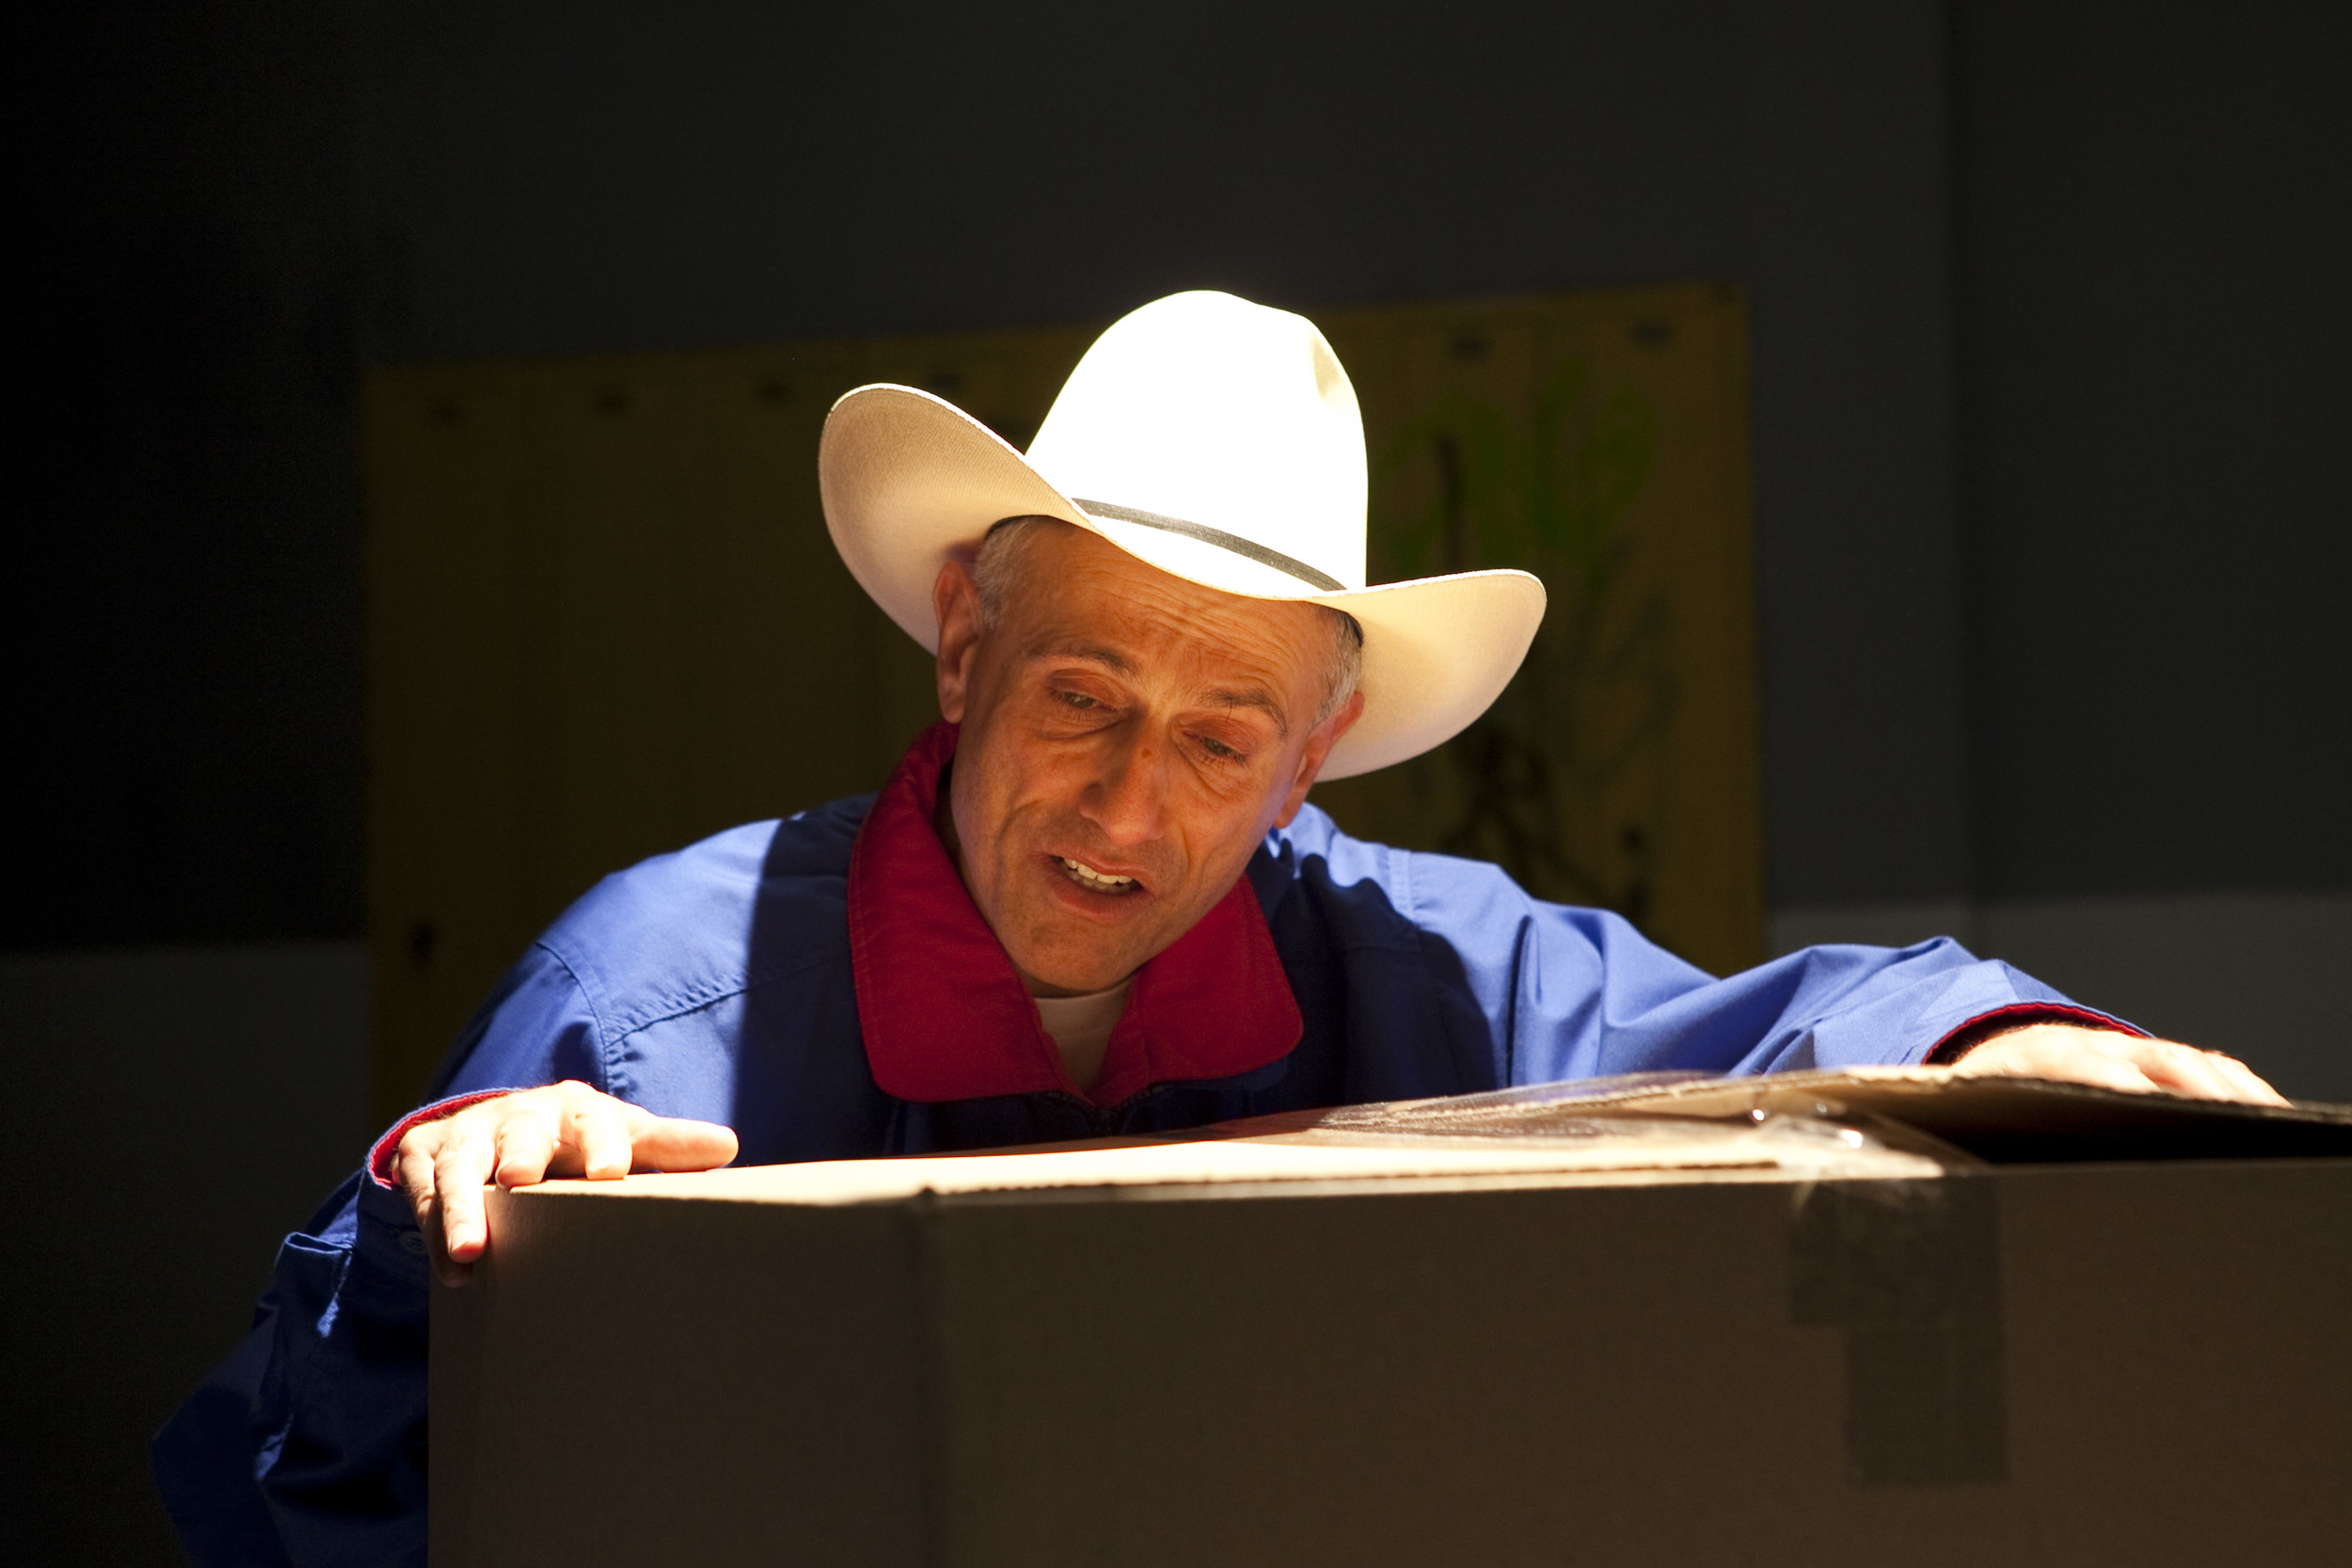 David Greenspan as 'Fred Phelps'. (Photo by Chasi Annexy)